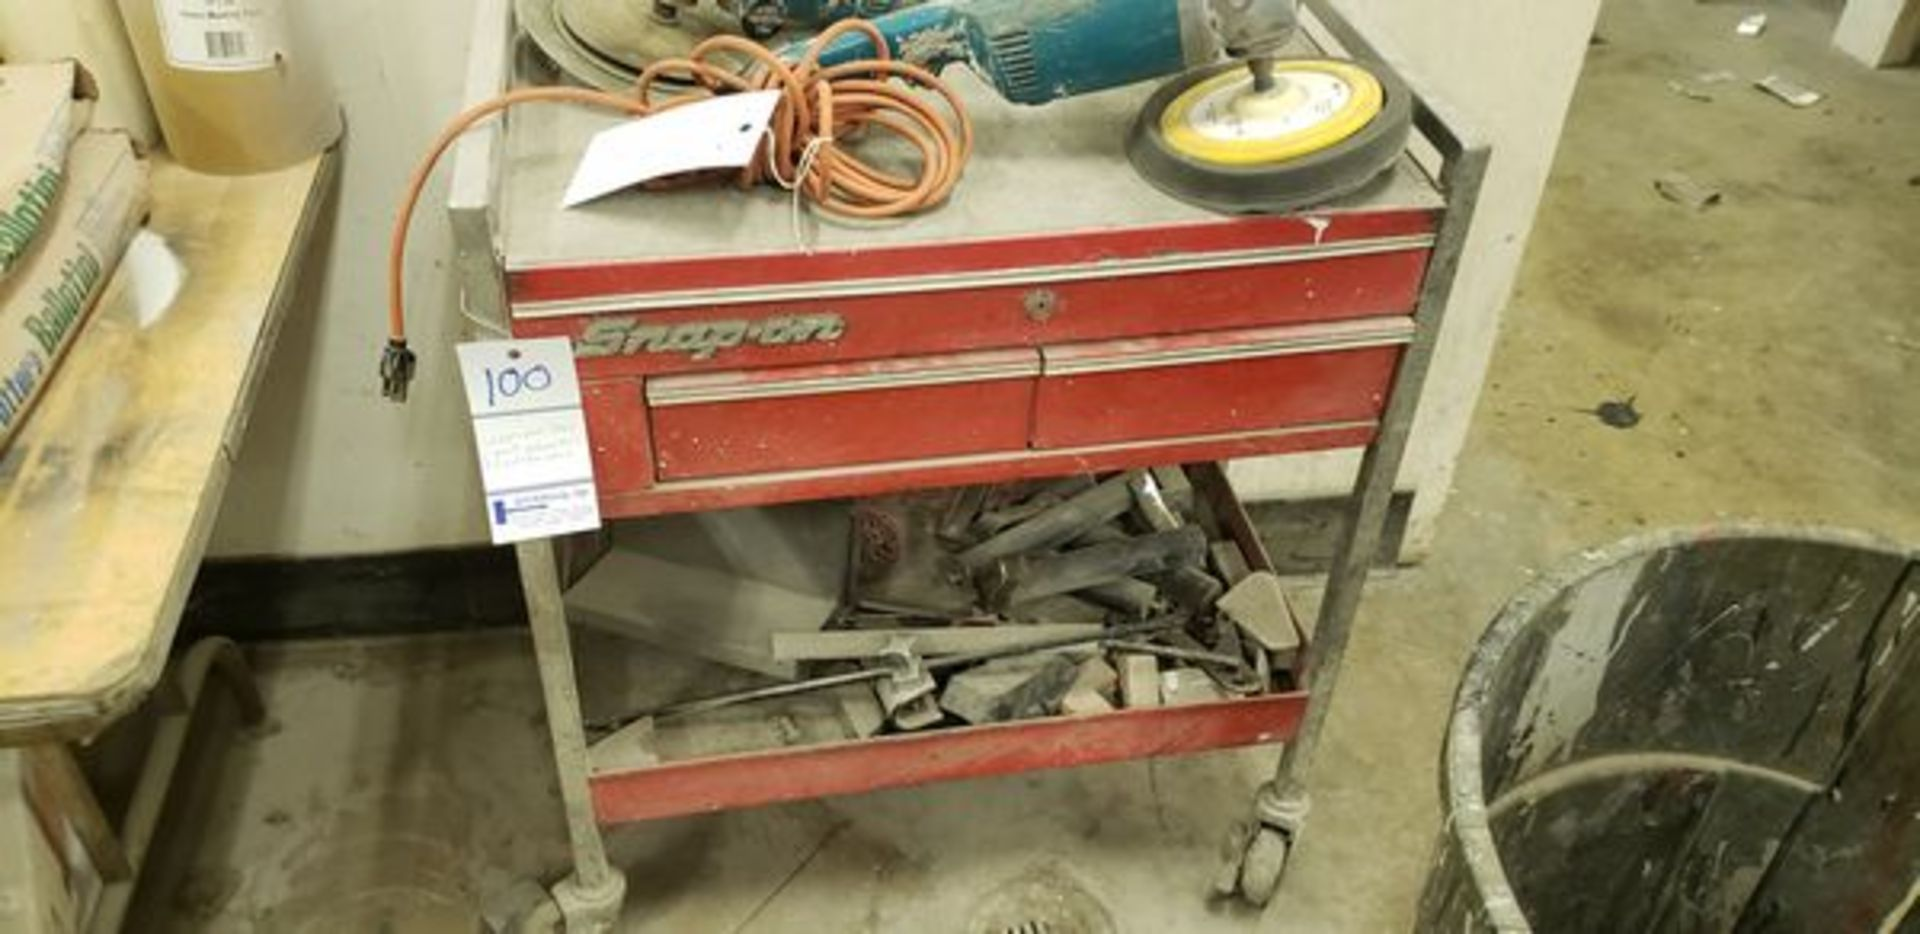 SNAP ON TOOL CART WITH CONTENT ON BOTTOM SHELF